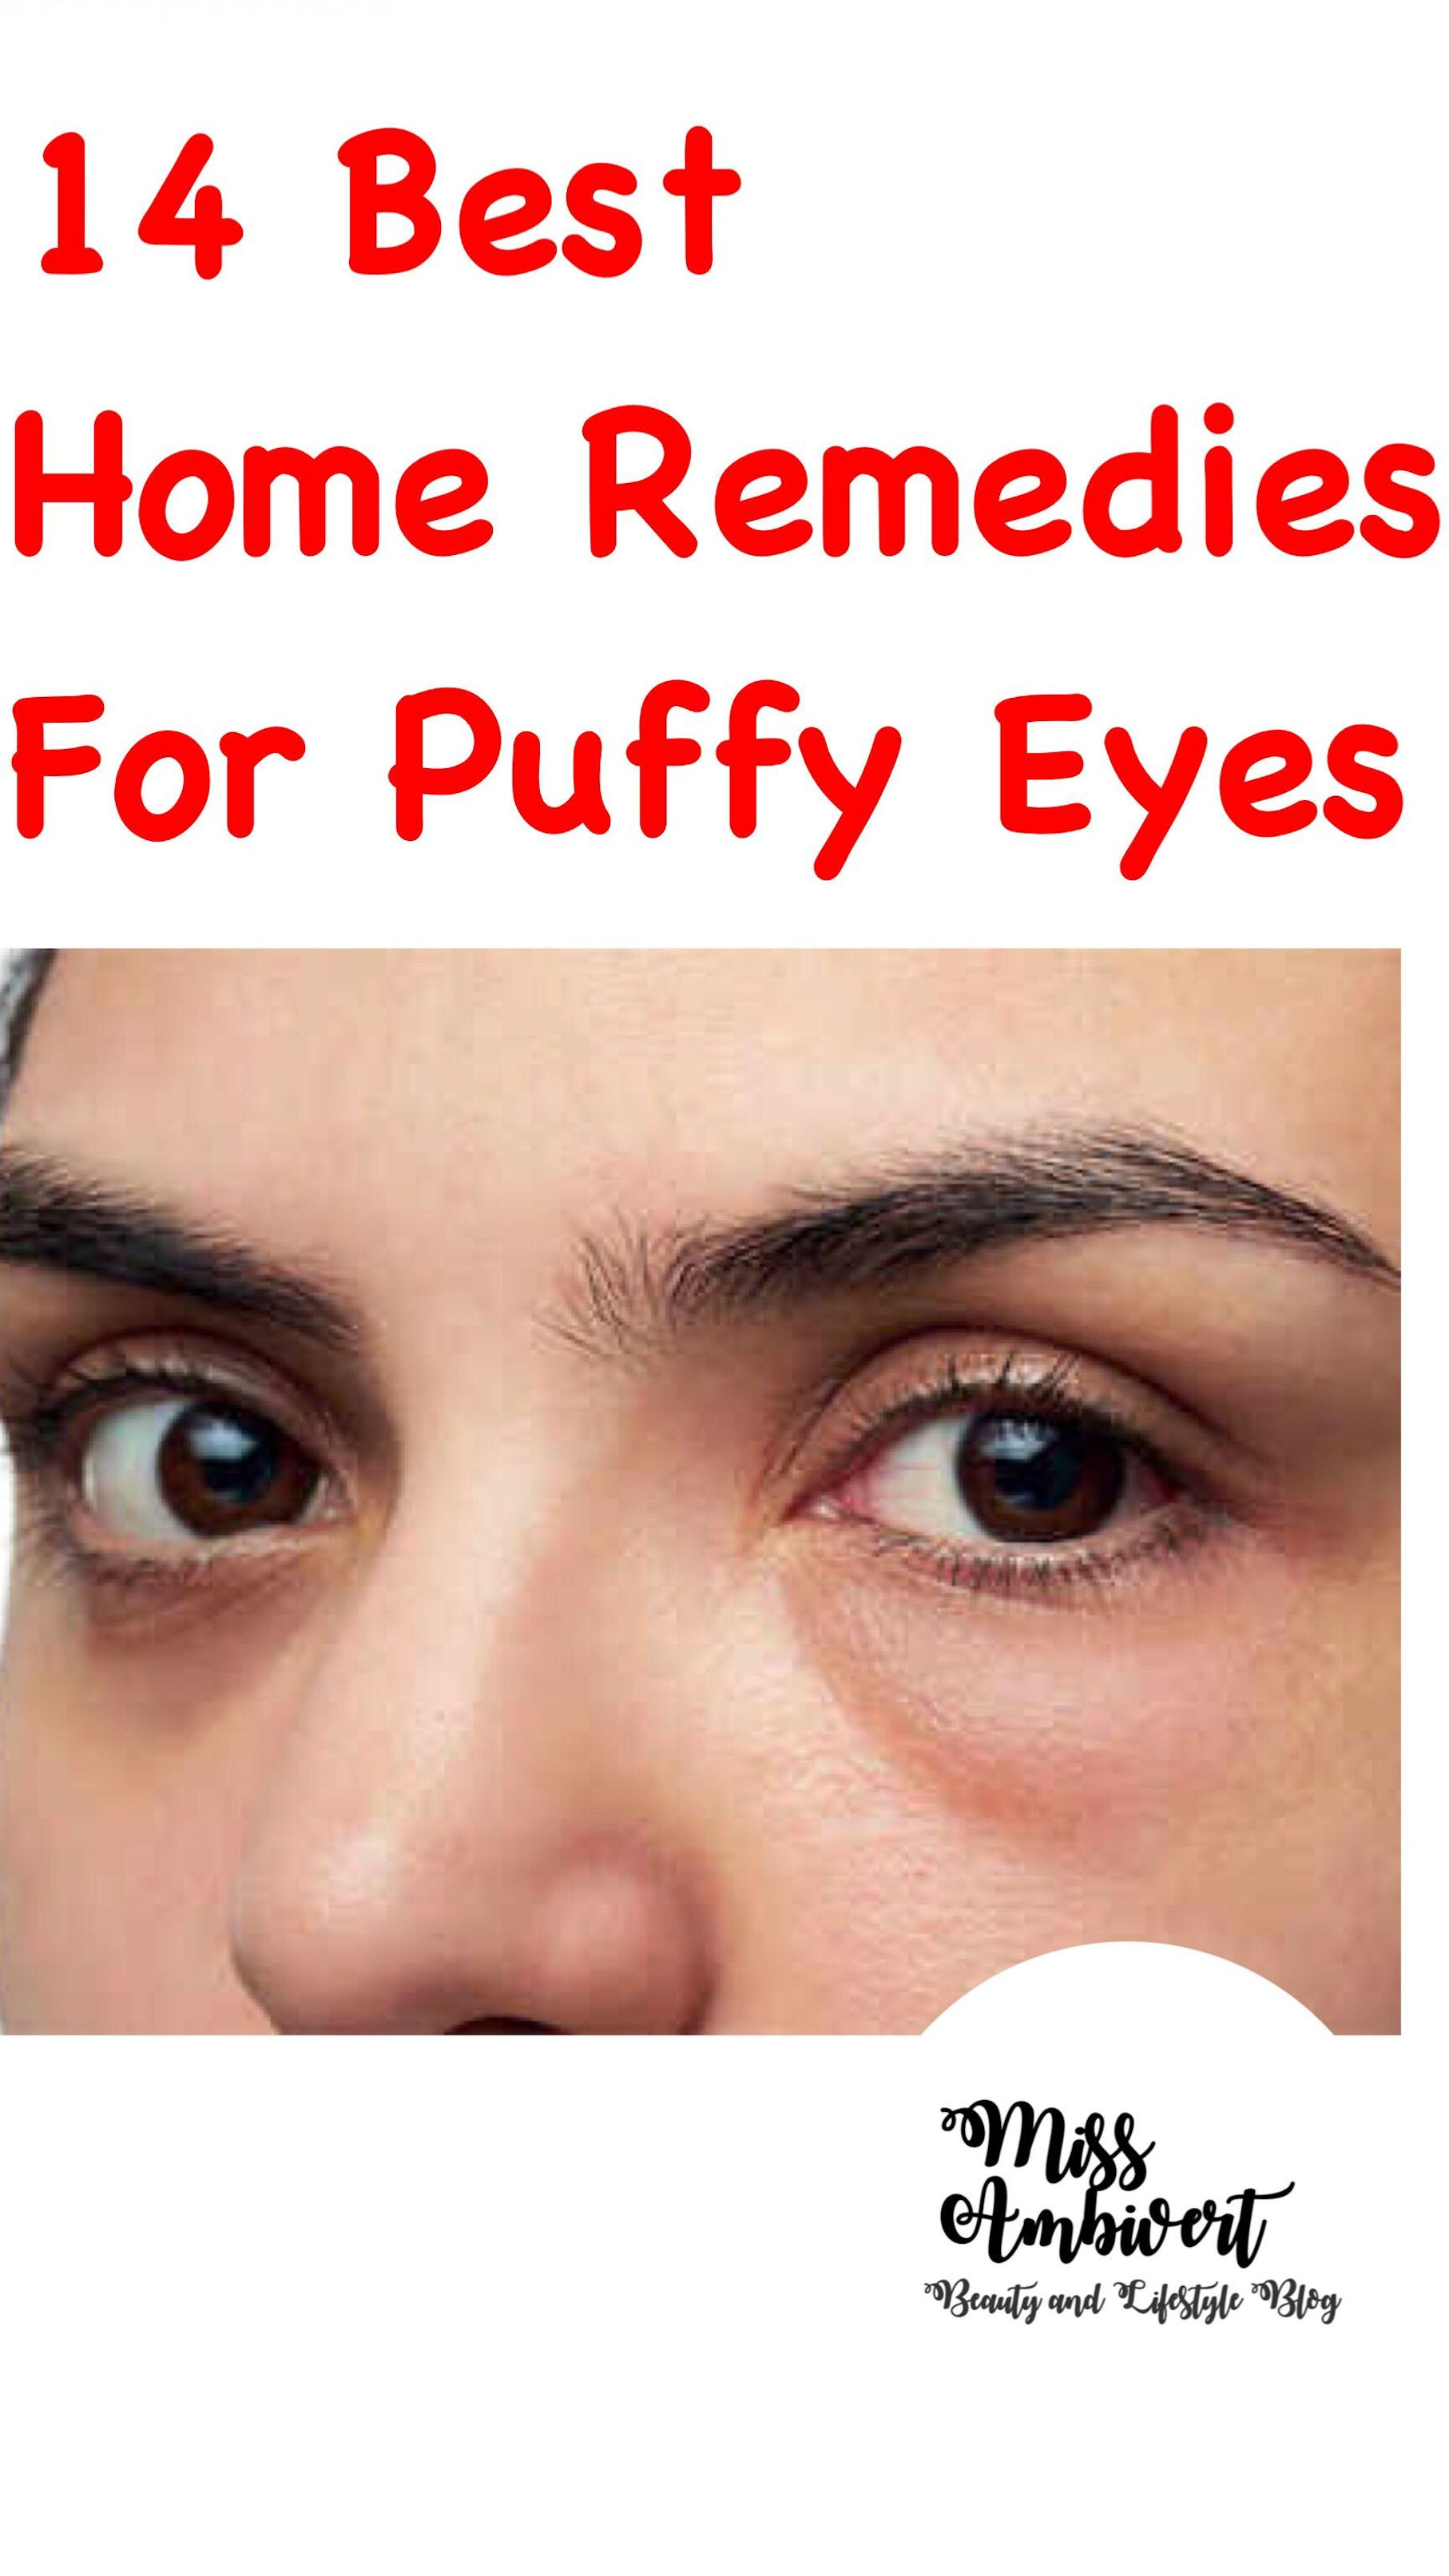 5cf728d47863dd112a8ecf395012fdfc - How To Get Rid Of Tired Looking Eyes Naturally